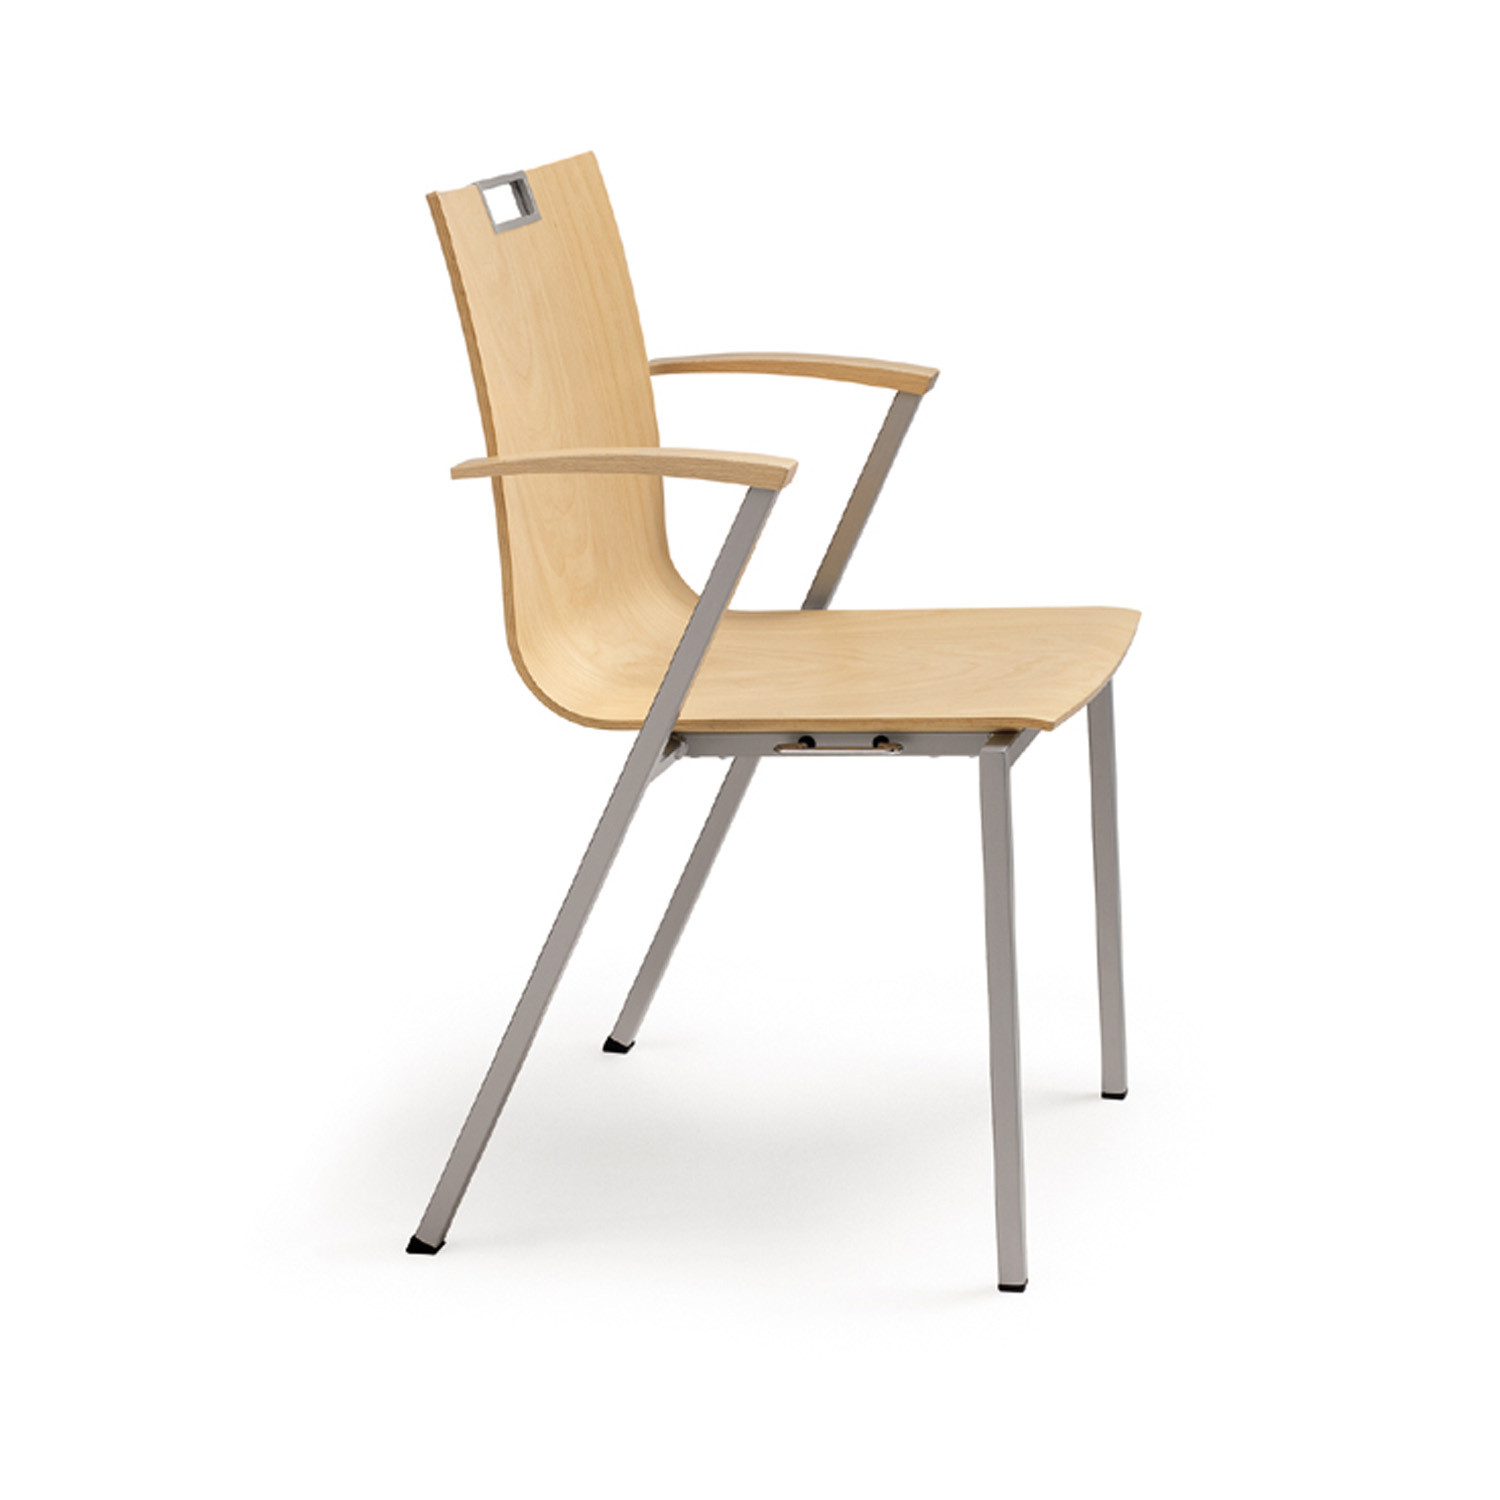 Publix Chair Plywood with Armrests